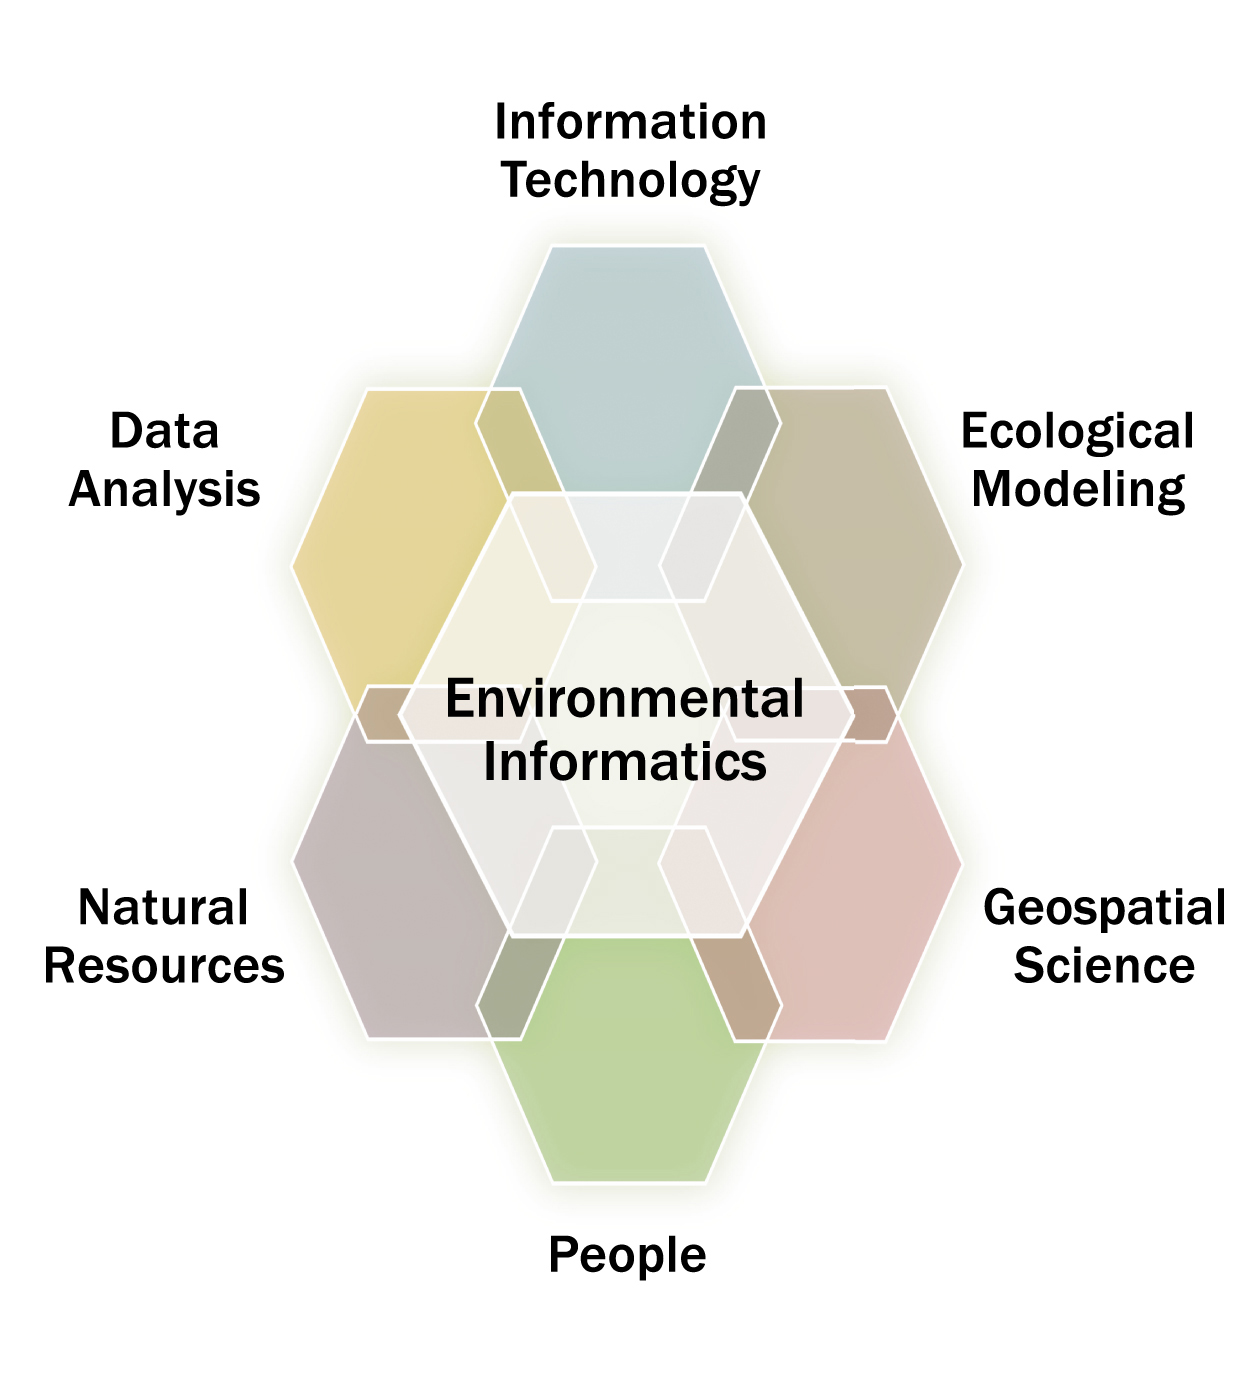 A graphic with environmental informatics at the center, surrounded by information technology, ecological modeling, geospatial science, people, natural resources, and data analysis.